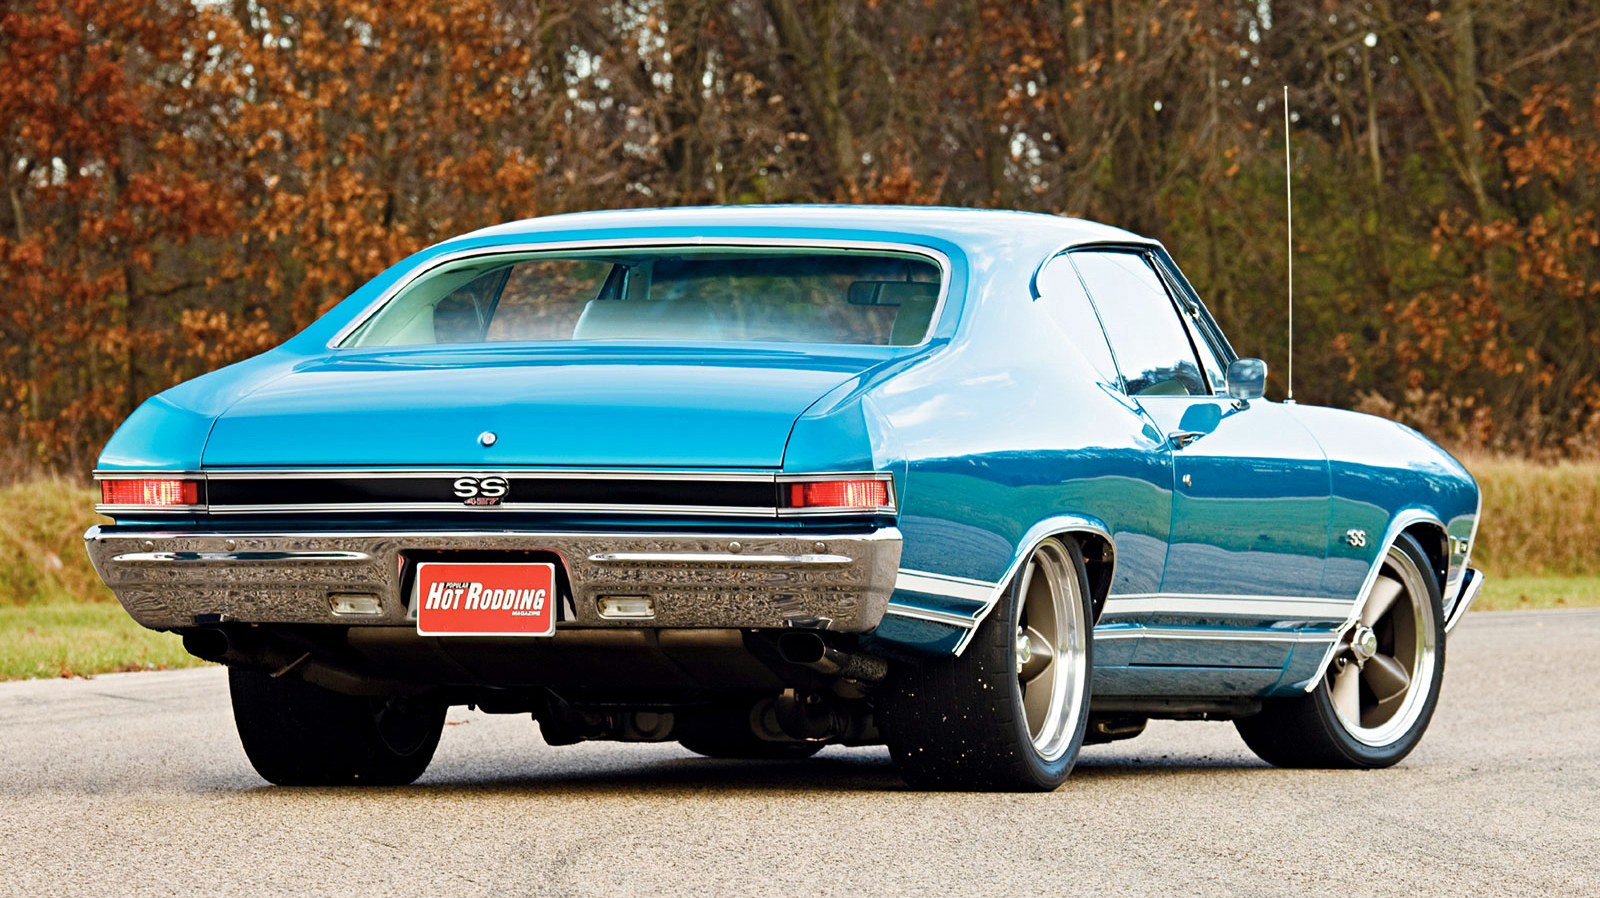 Chevelle Ss Wallpaper 1968 Chevy Chevelle Ss Rear View Wallpaper Autos Faxo